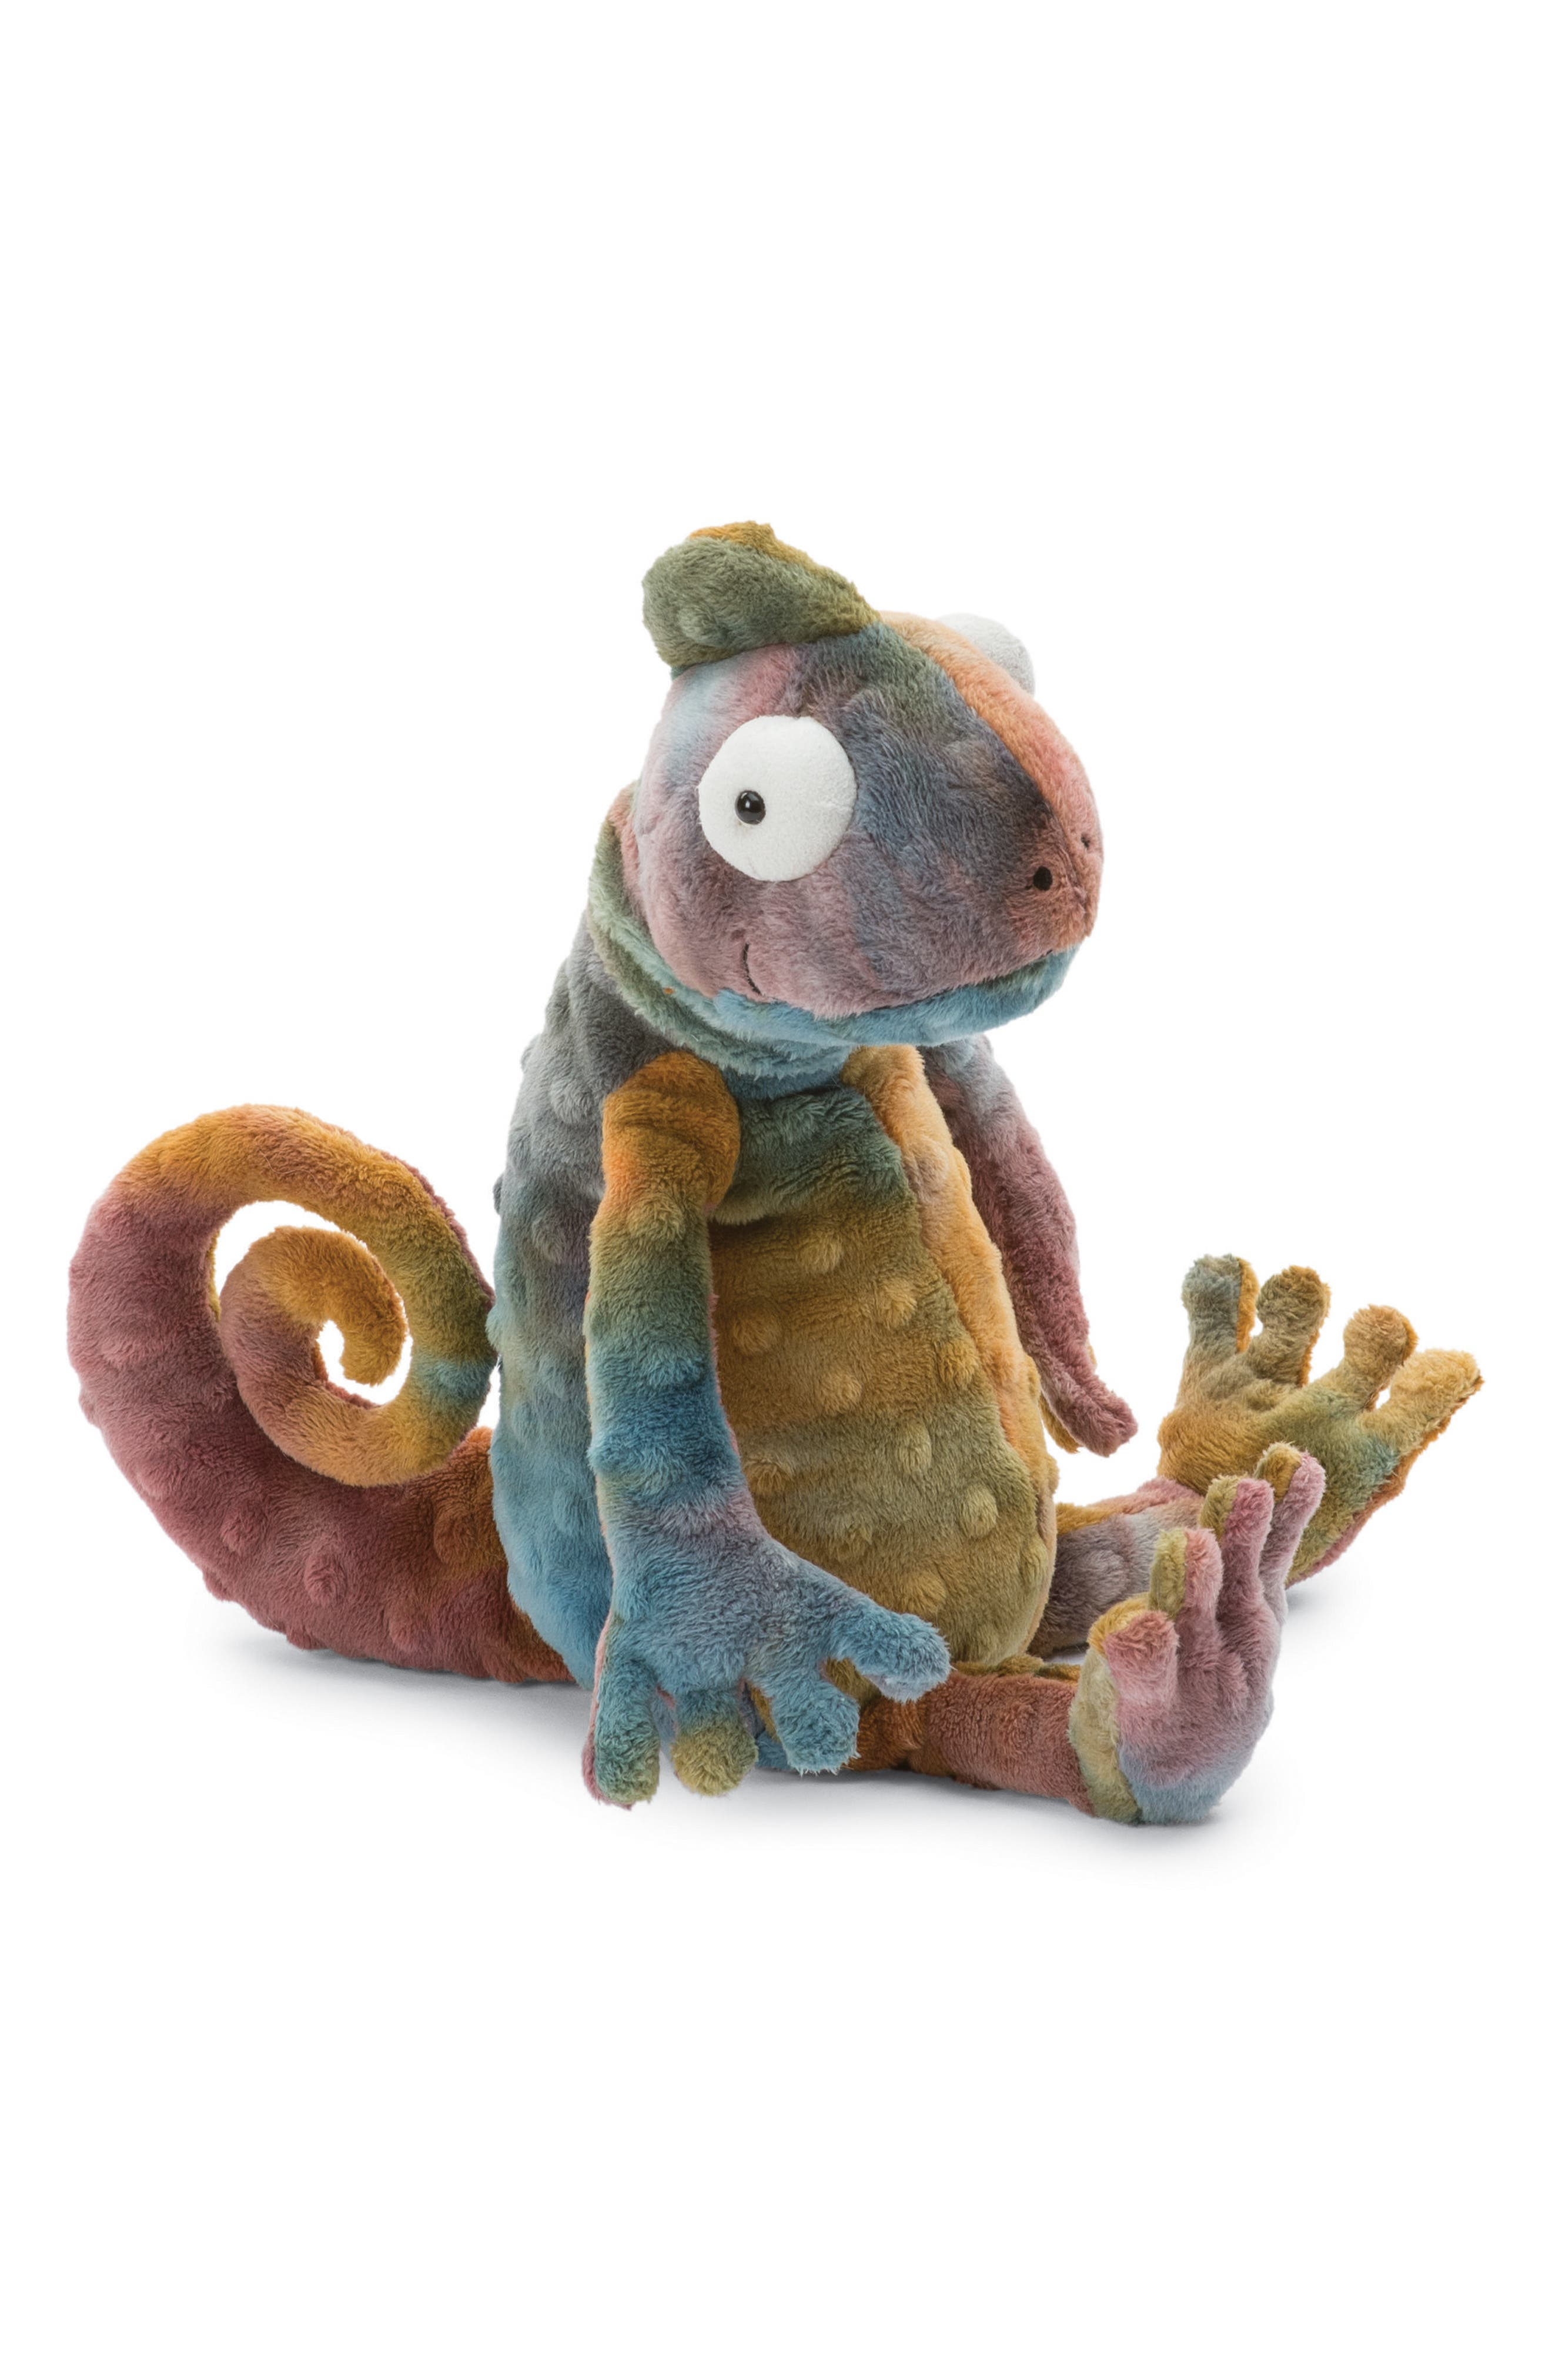 Colin Chameleon Stuffed Animal,                             Main thumbnail 1, color,                             300